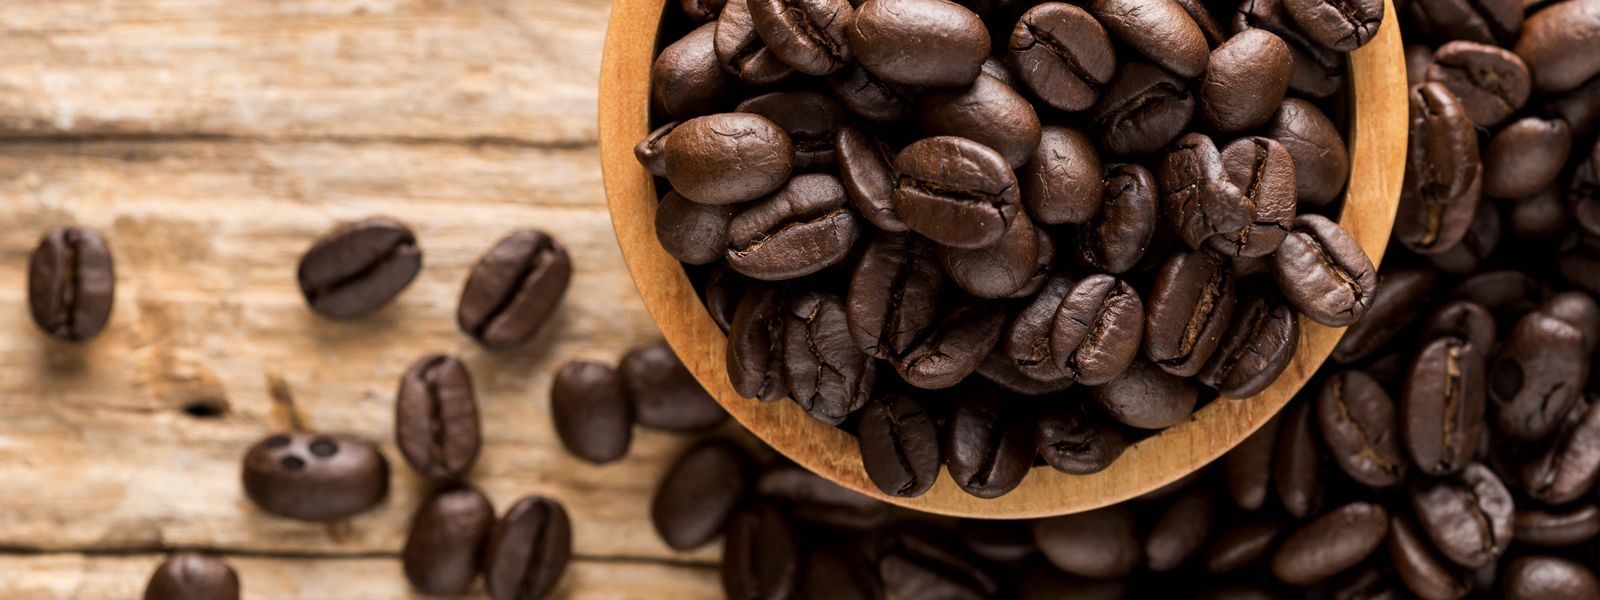 Caffeine Overdose: How Much is too Much?